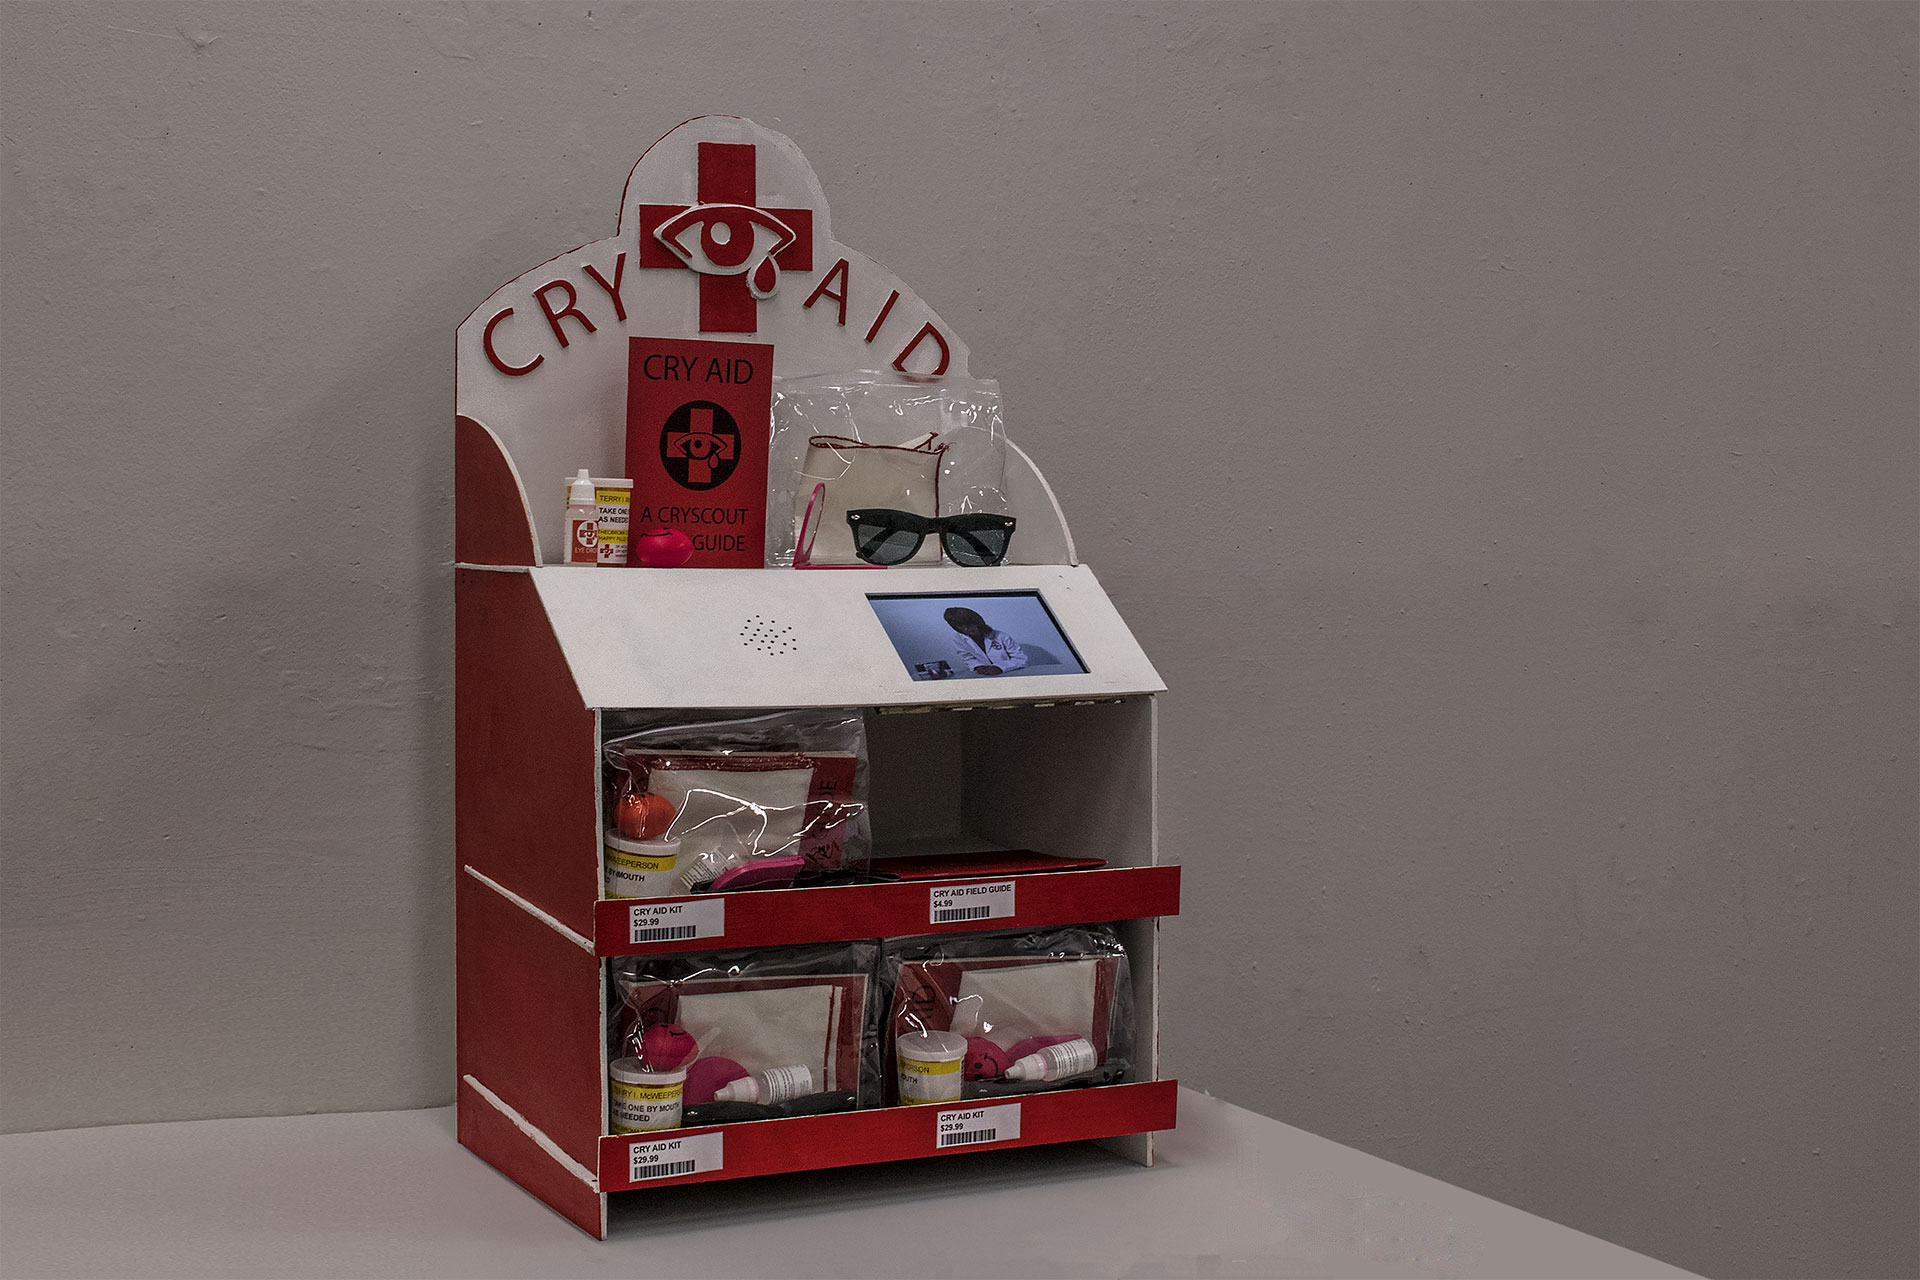 "Cry Aid Display    8 min looping infomercial, Cry Aid Kits, Cry Aid Field Guides, wooden display, price tags  32"" x 19"" x 13""  2017."